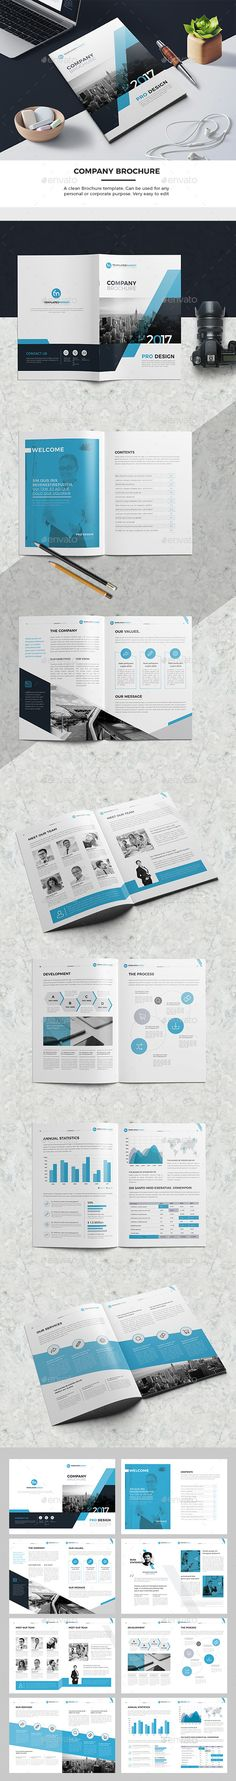 TM Square Company Brochure 16 Pages by TemplatesMarket TM Square Company BrochureFeatures: Adobe Indesign (.indd)IDML version included for or later versions 16 Pages Dimension: Brochure Indesign, Template Brochure, Corporate Brochure Design, Company Brochure, Business Brochure, Indesign Templates, Adobe Indesign, Report Template, Corporate Business